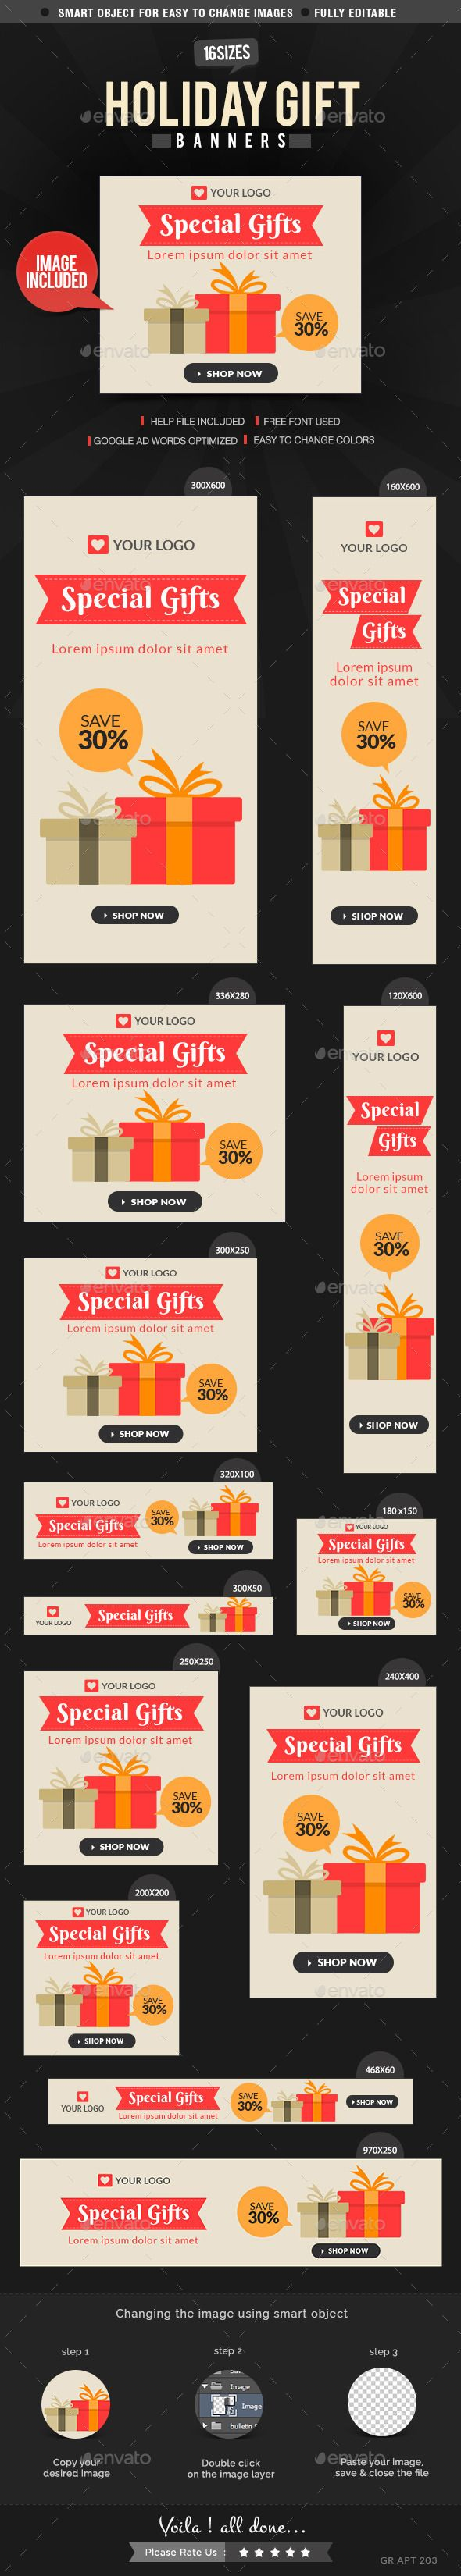 Holiday Gift Banners Template PSD | Buy and Download: http://graphicriver.net/item/holiday-gift-banners/9697783?ref=ksioks